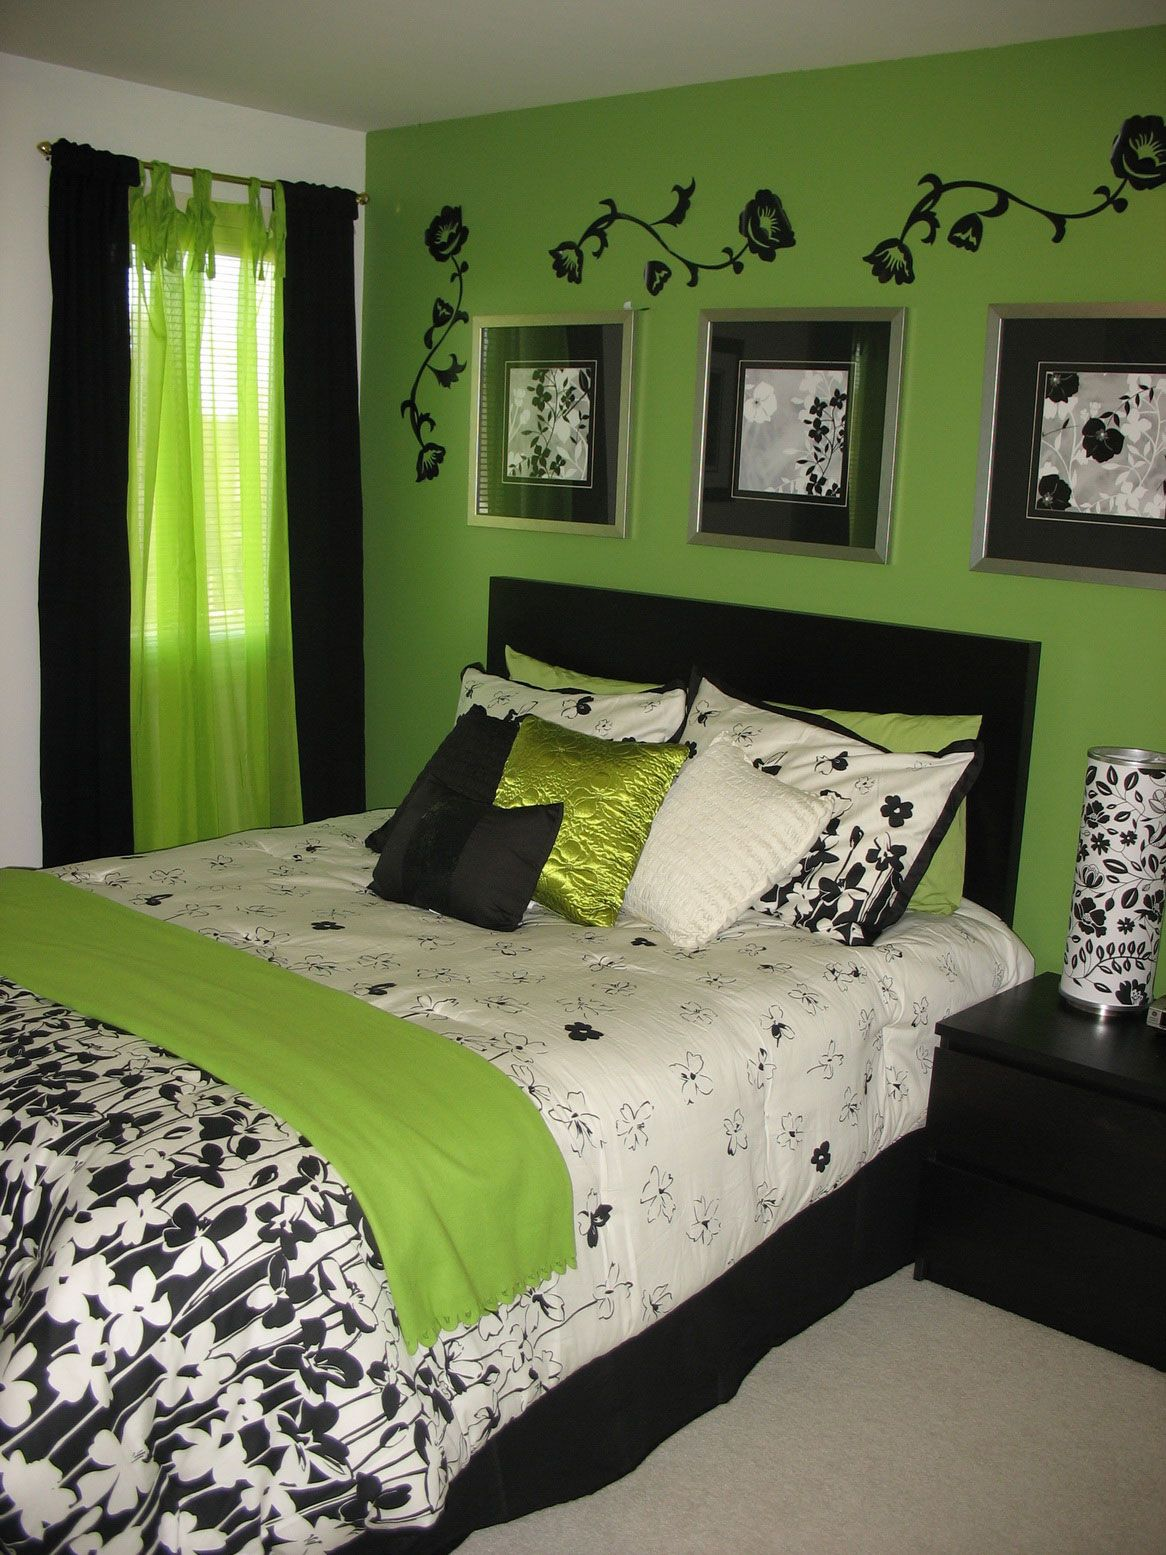 Green bedroom ideas for women - Bedroom Captivating Decorating Ideas In Lime Green Bedrooms Interior Design Using White Comforter Platform